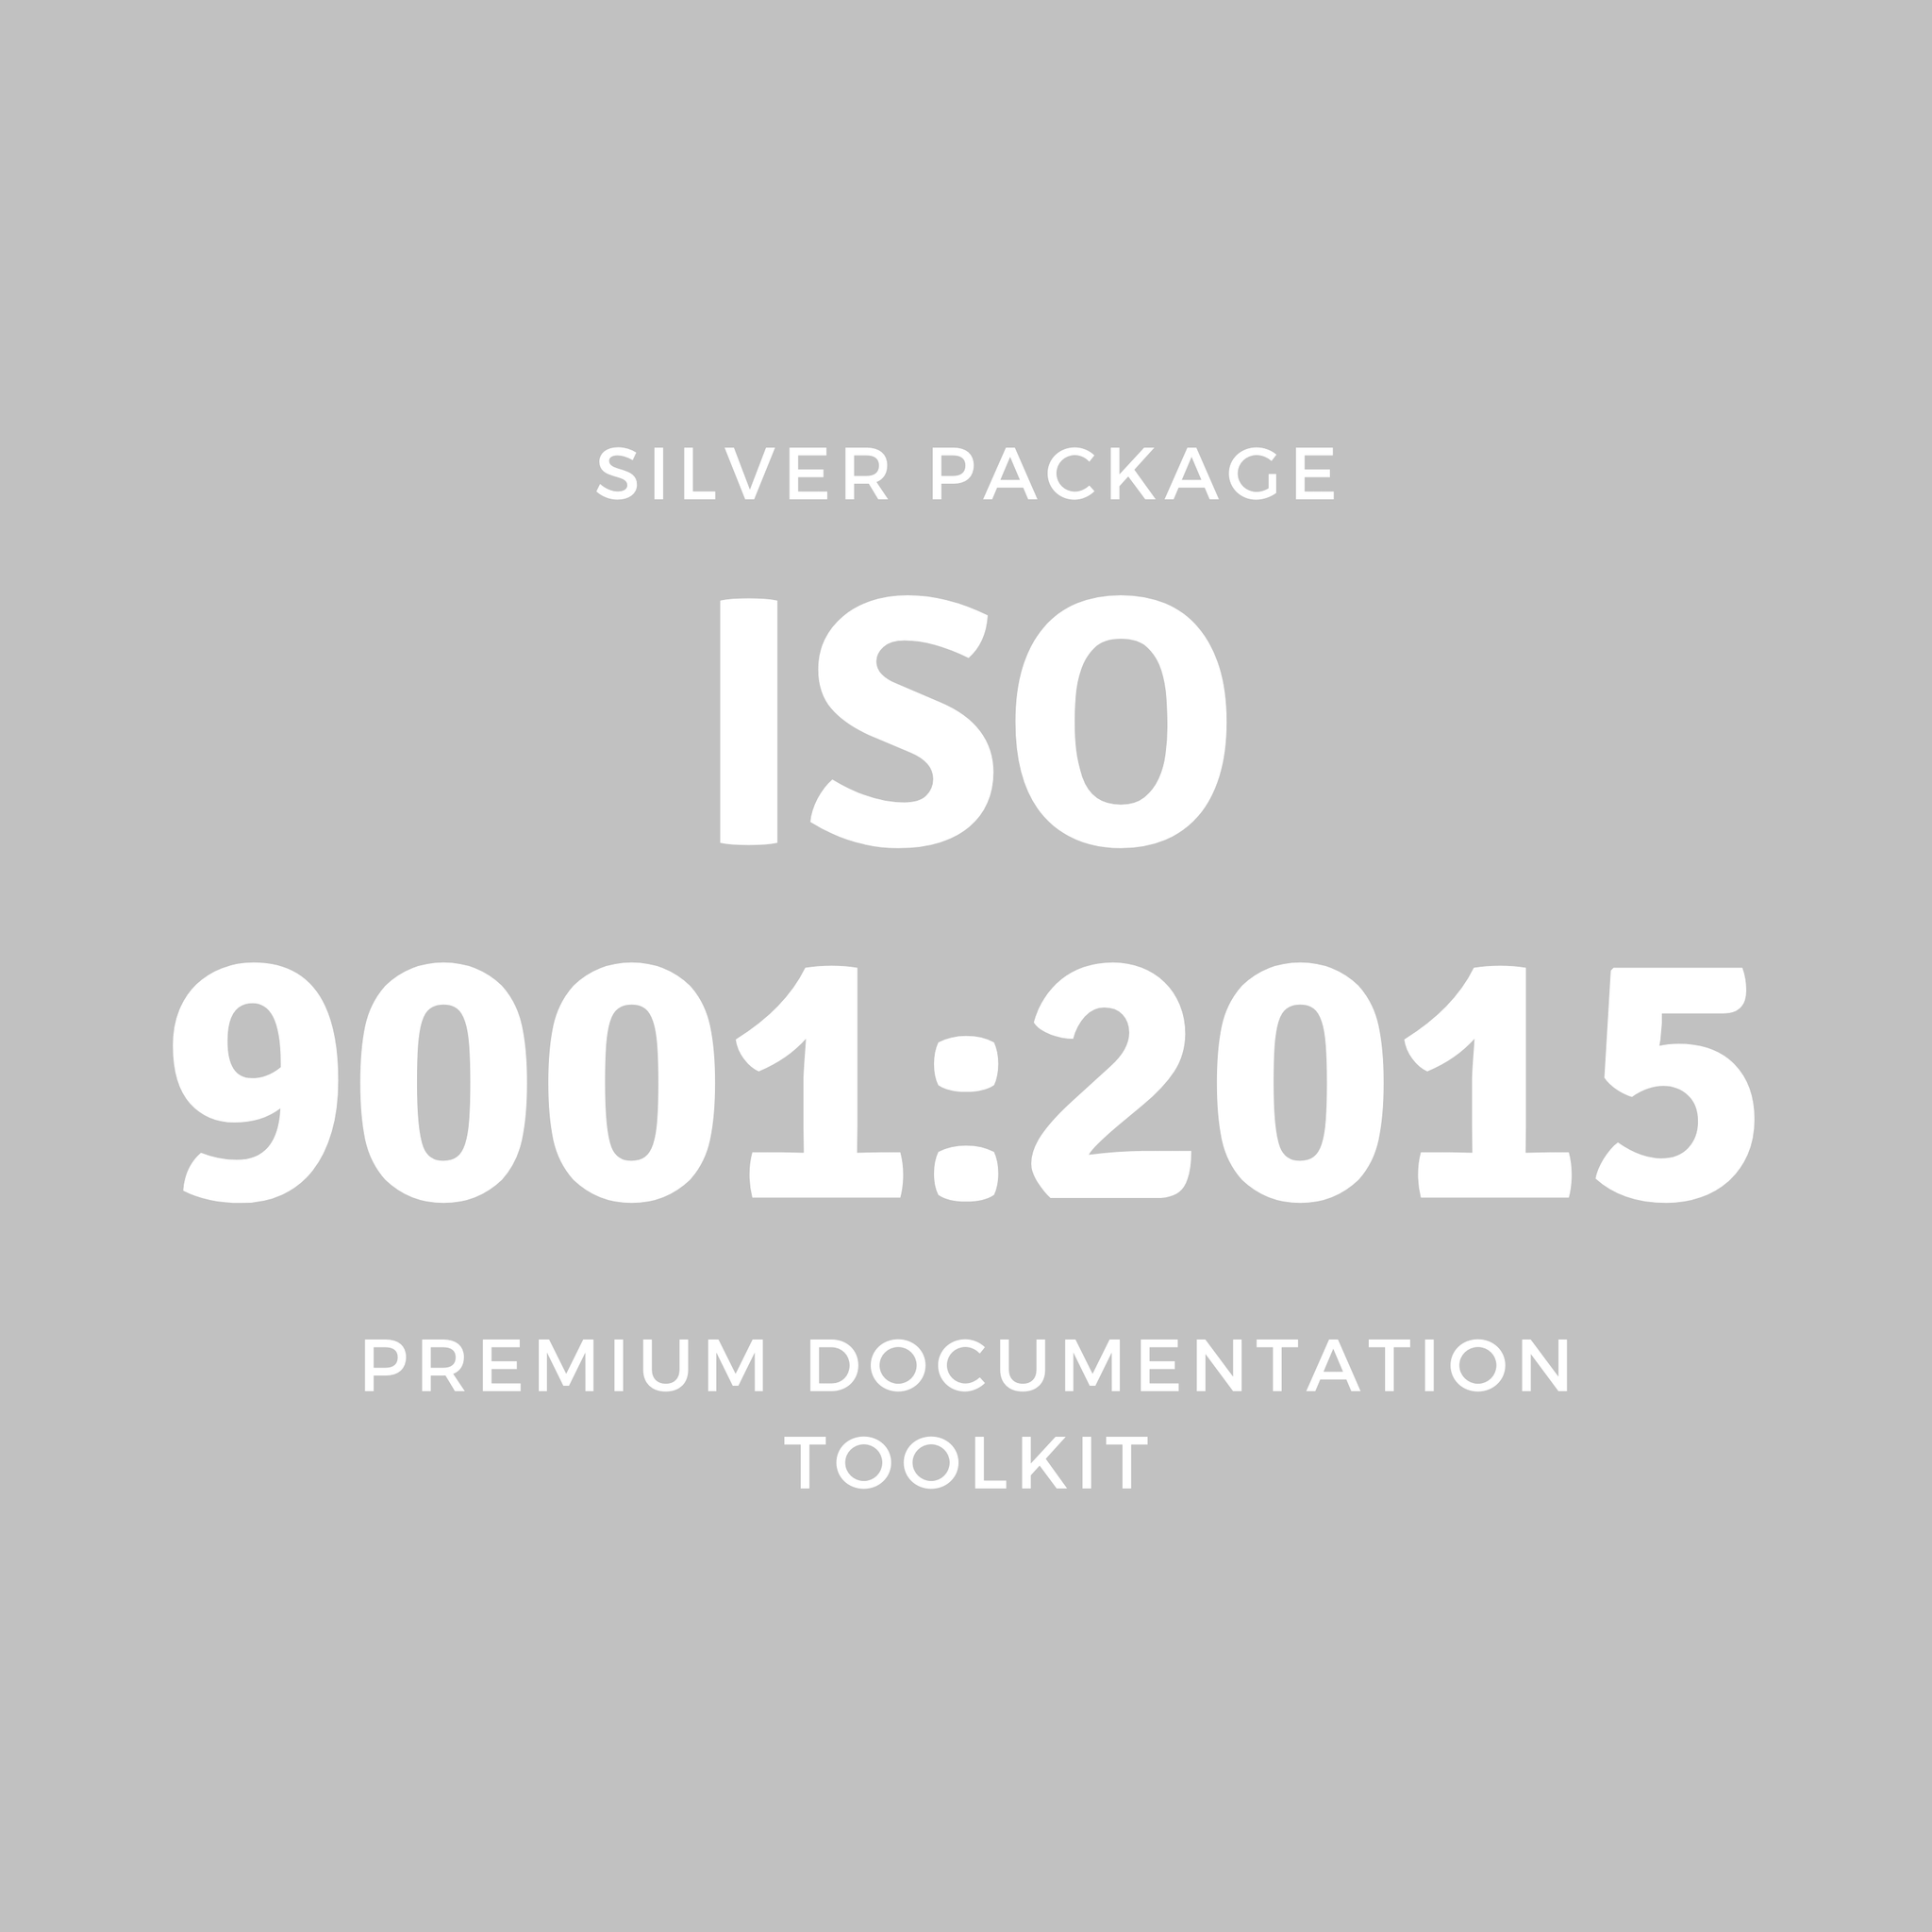 SILVER | ISO 9001: 2015 Premium Documentation Toolkit